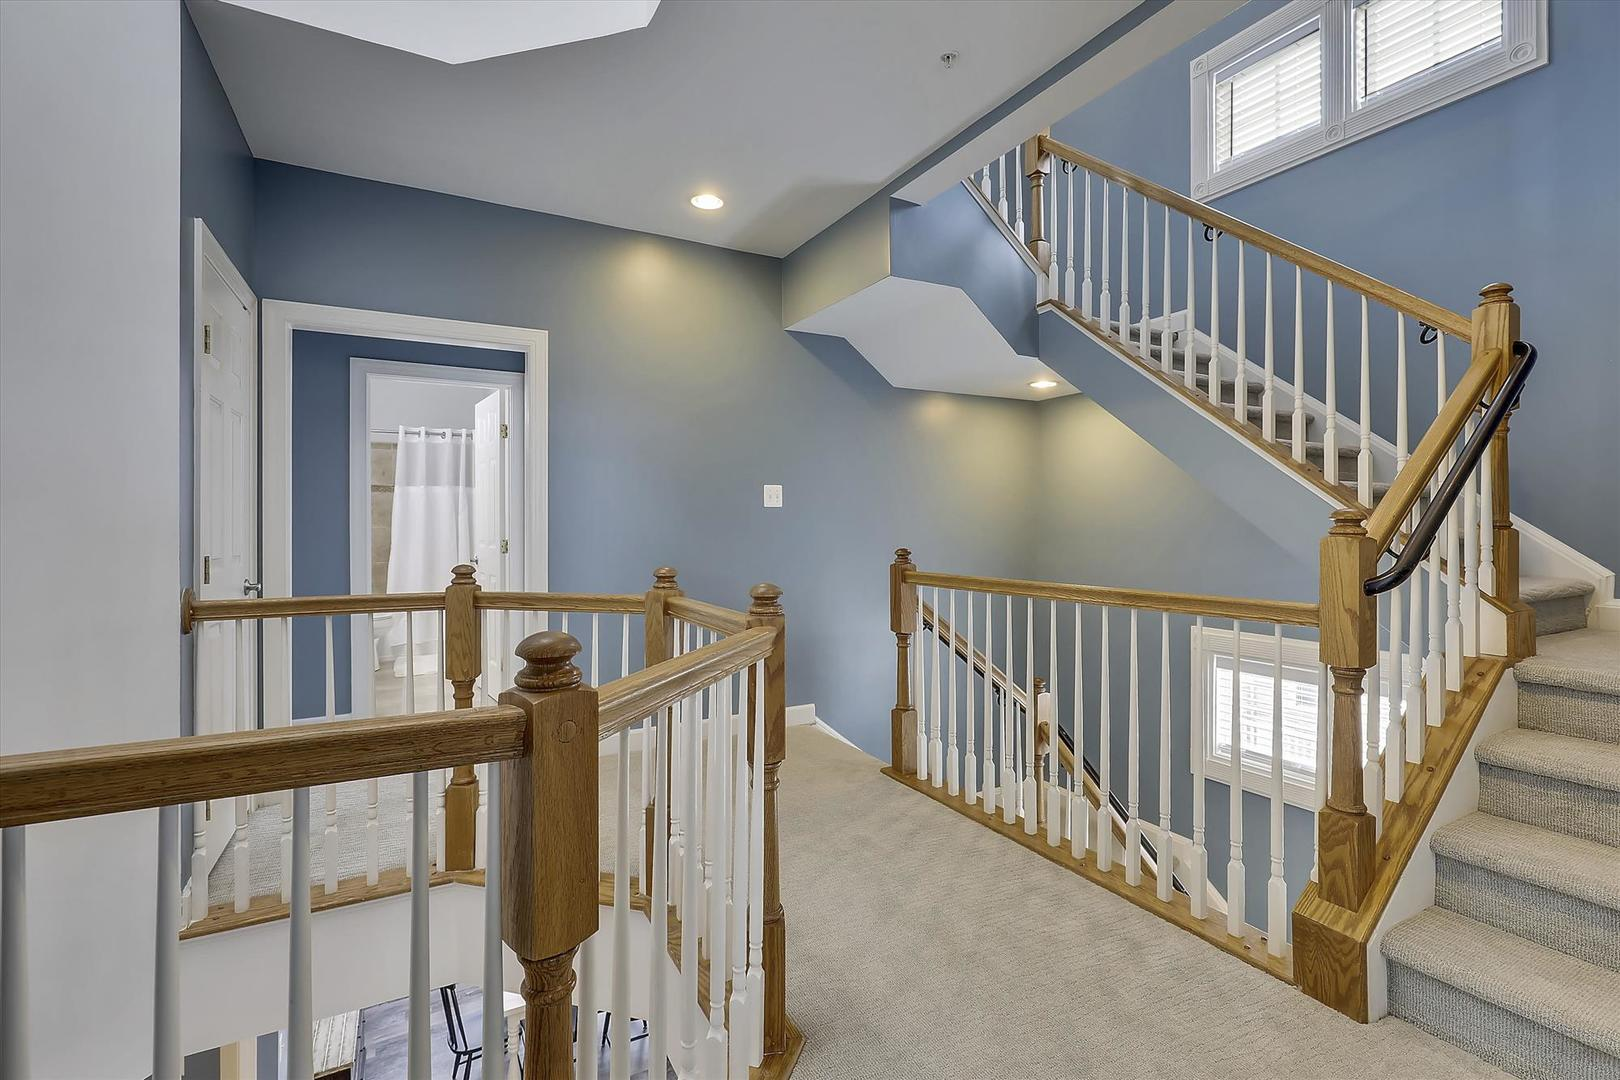 28 Seaside Dr. - Stairs to Fourth Floor